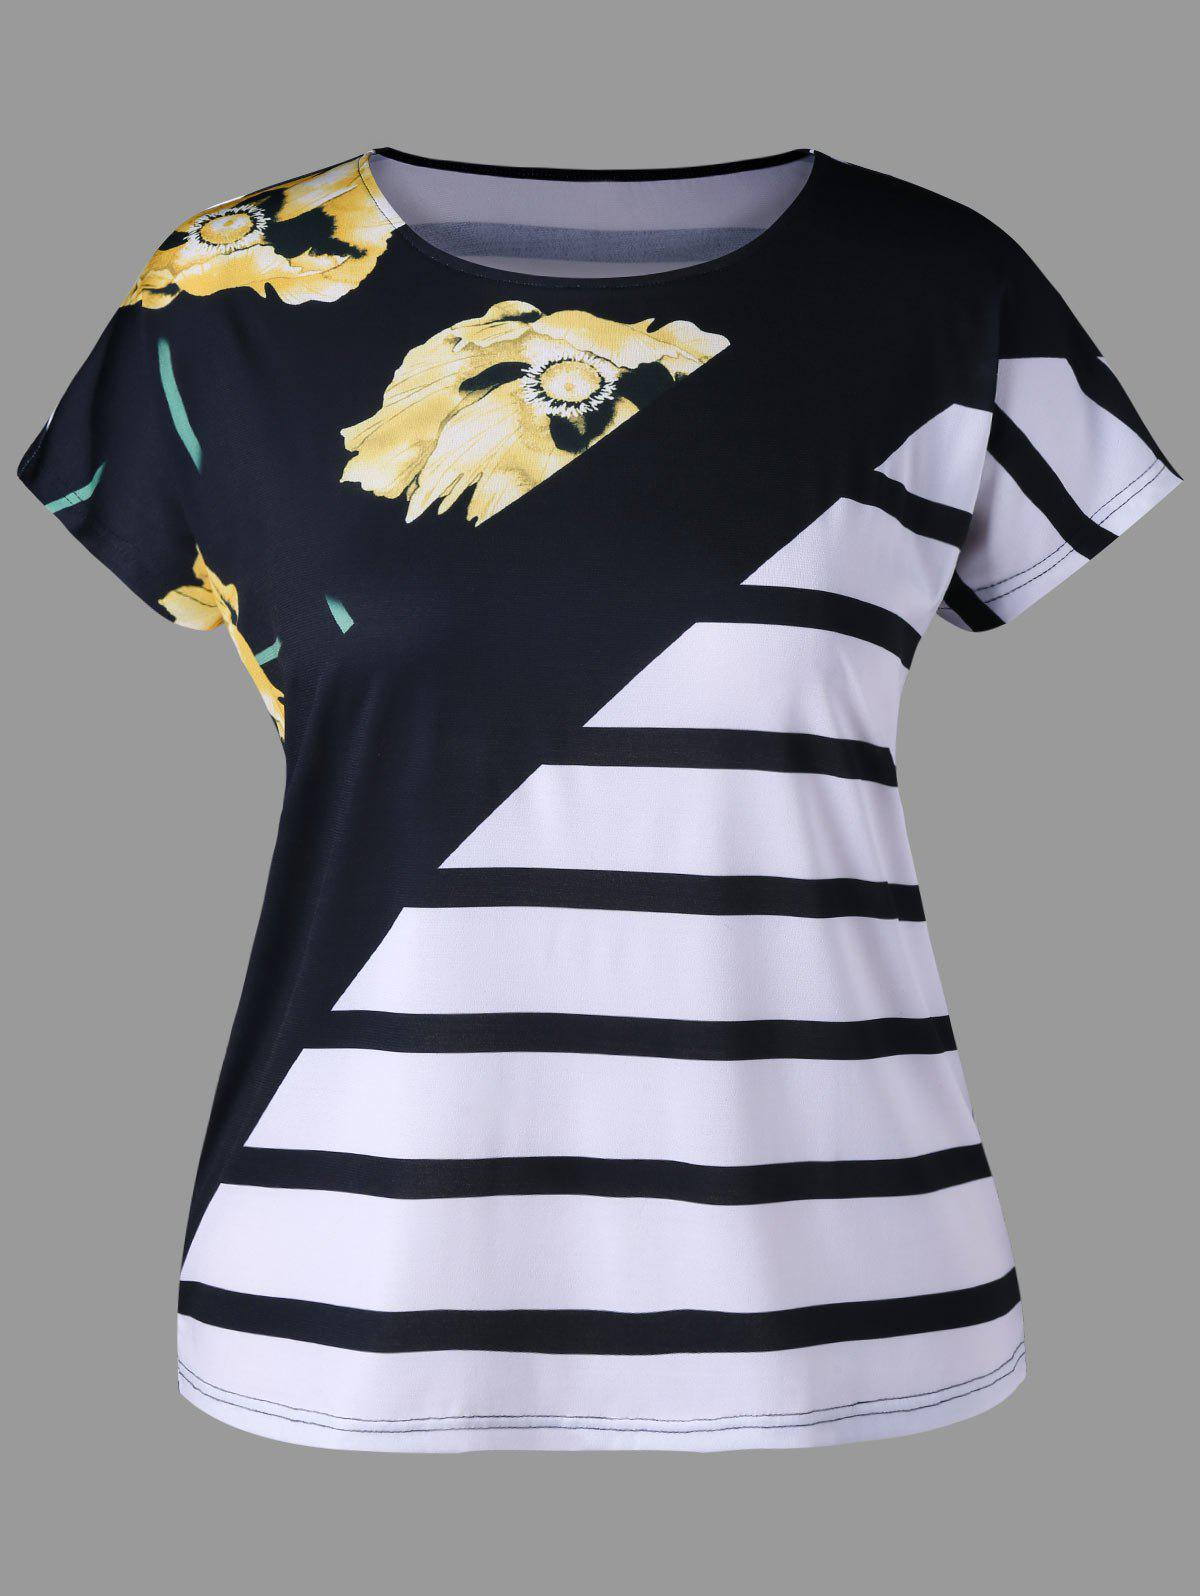 Plus Size Flower Striped Tee - COLORMIX 5XL